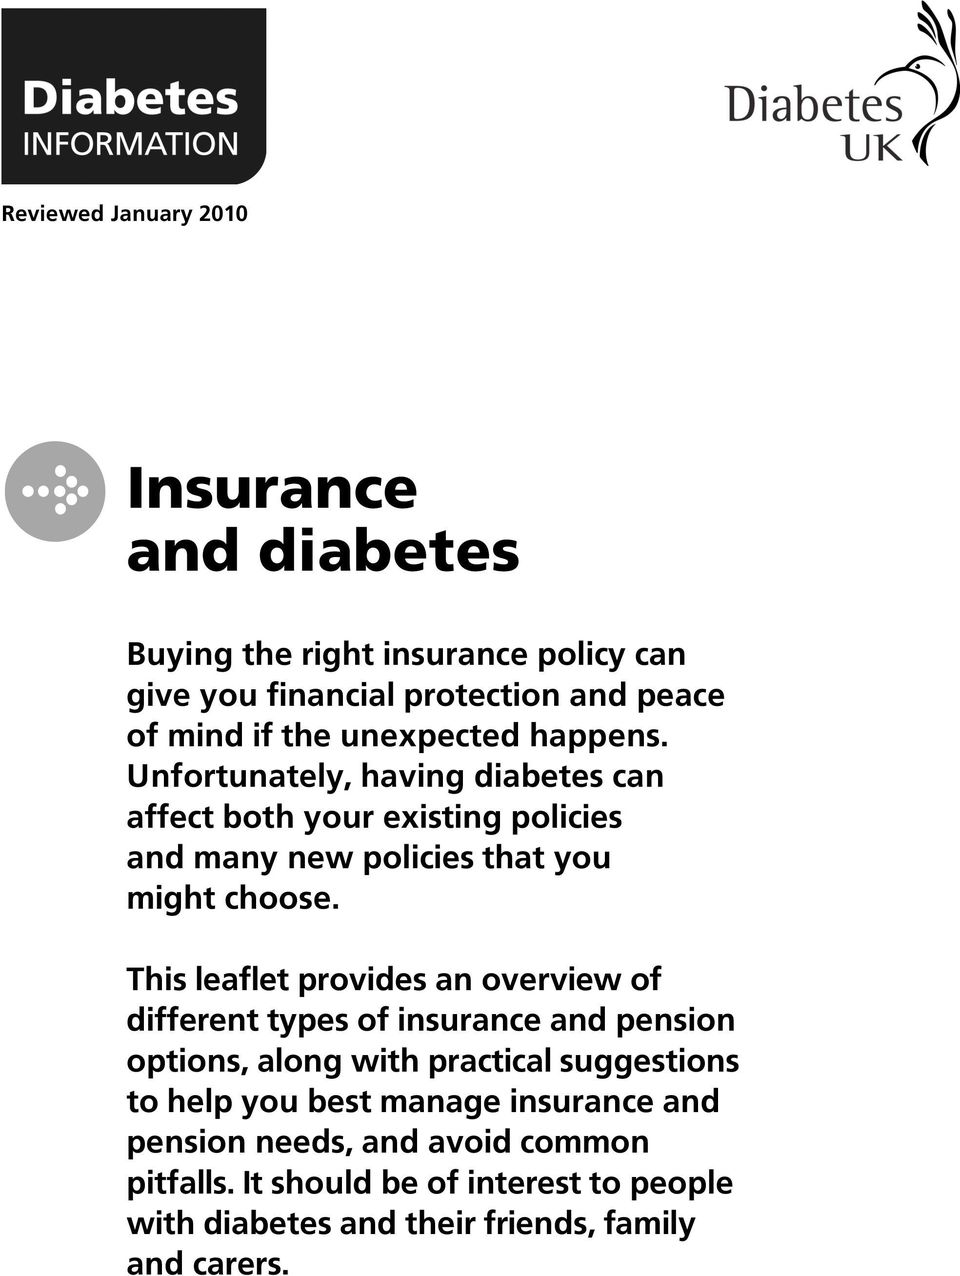 This leaflet provides an overview of different types of insurance and pension options, along with practical suggestions to help you best